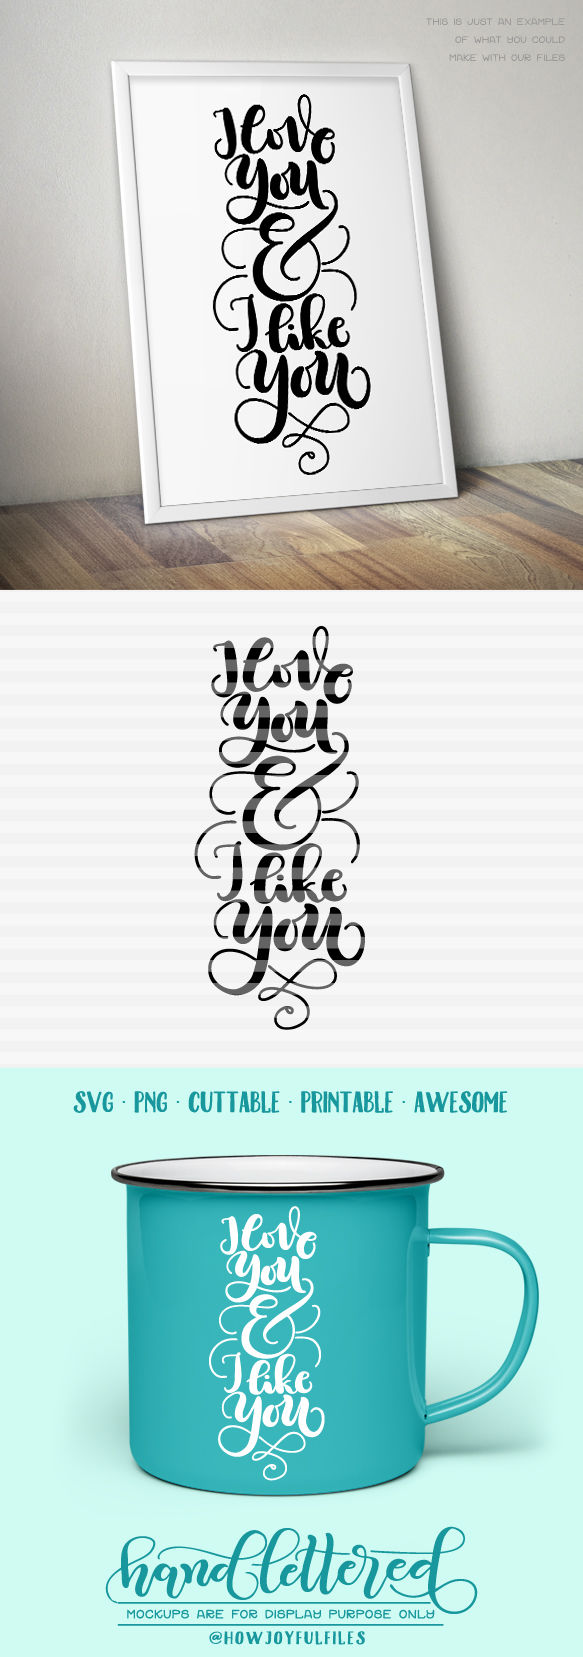 I Love You And I Like You Svg Pdf Hand Drawn Lettered Cut